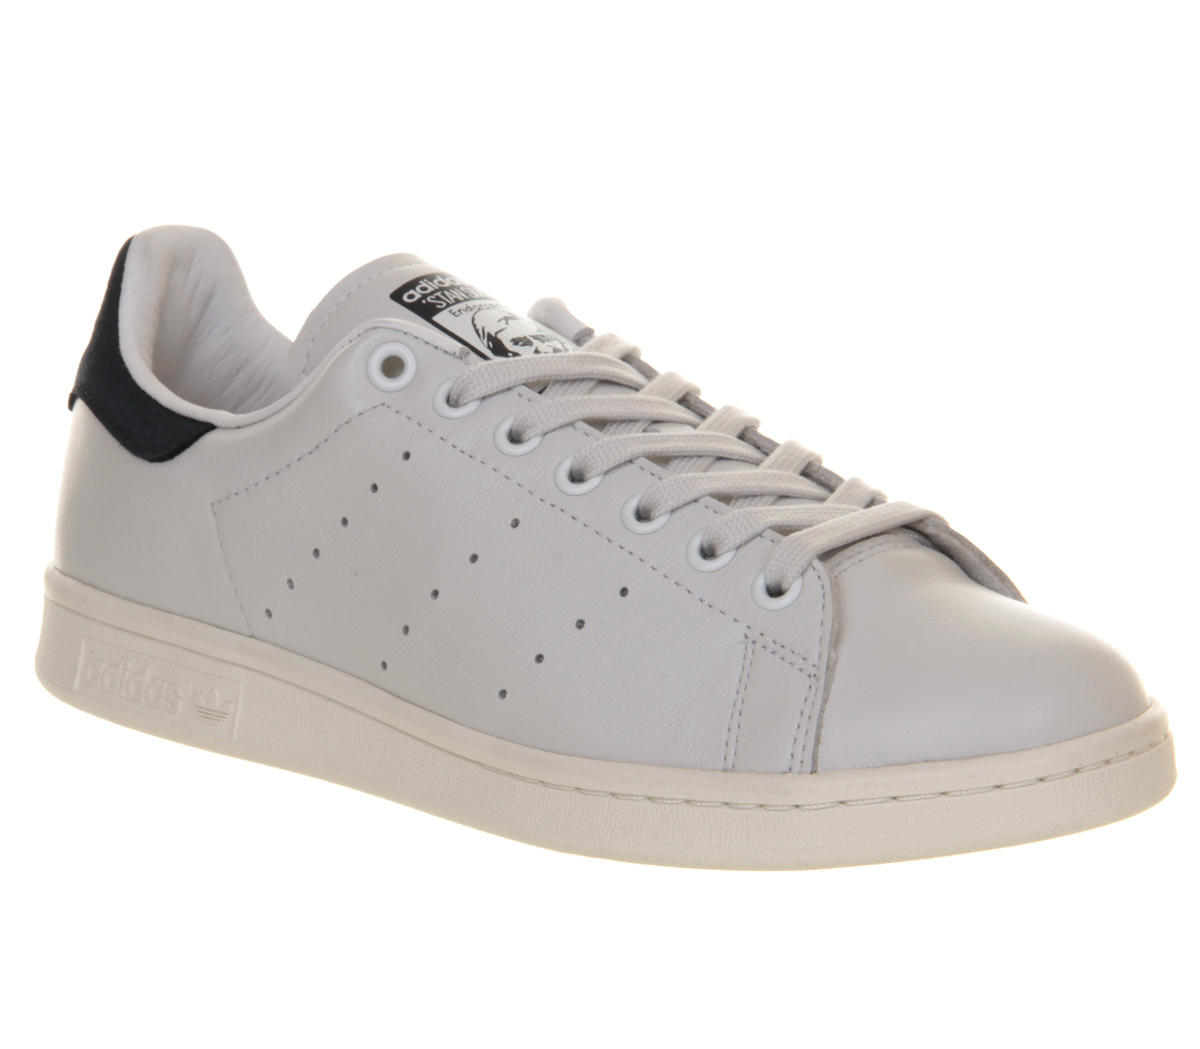 adidas stan smith in white for men lyst. Black Bedroom Furniture Sets. Home Design Ideas